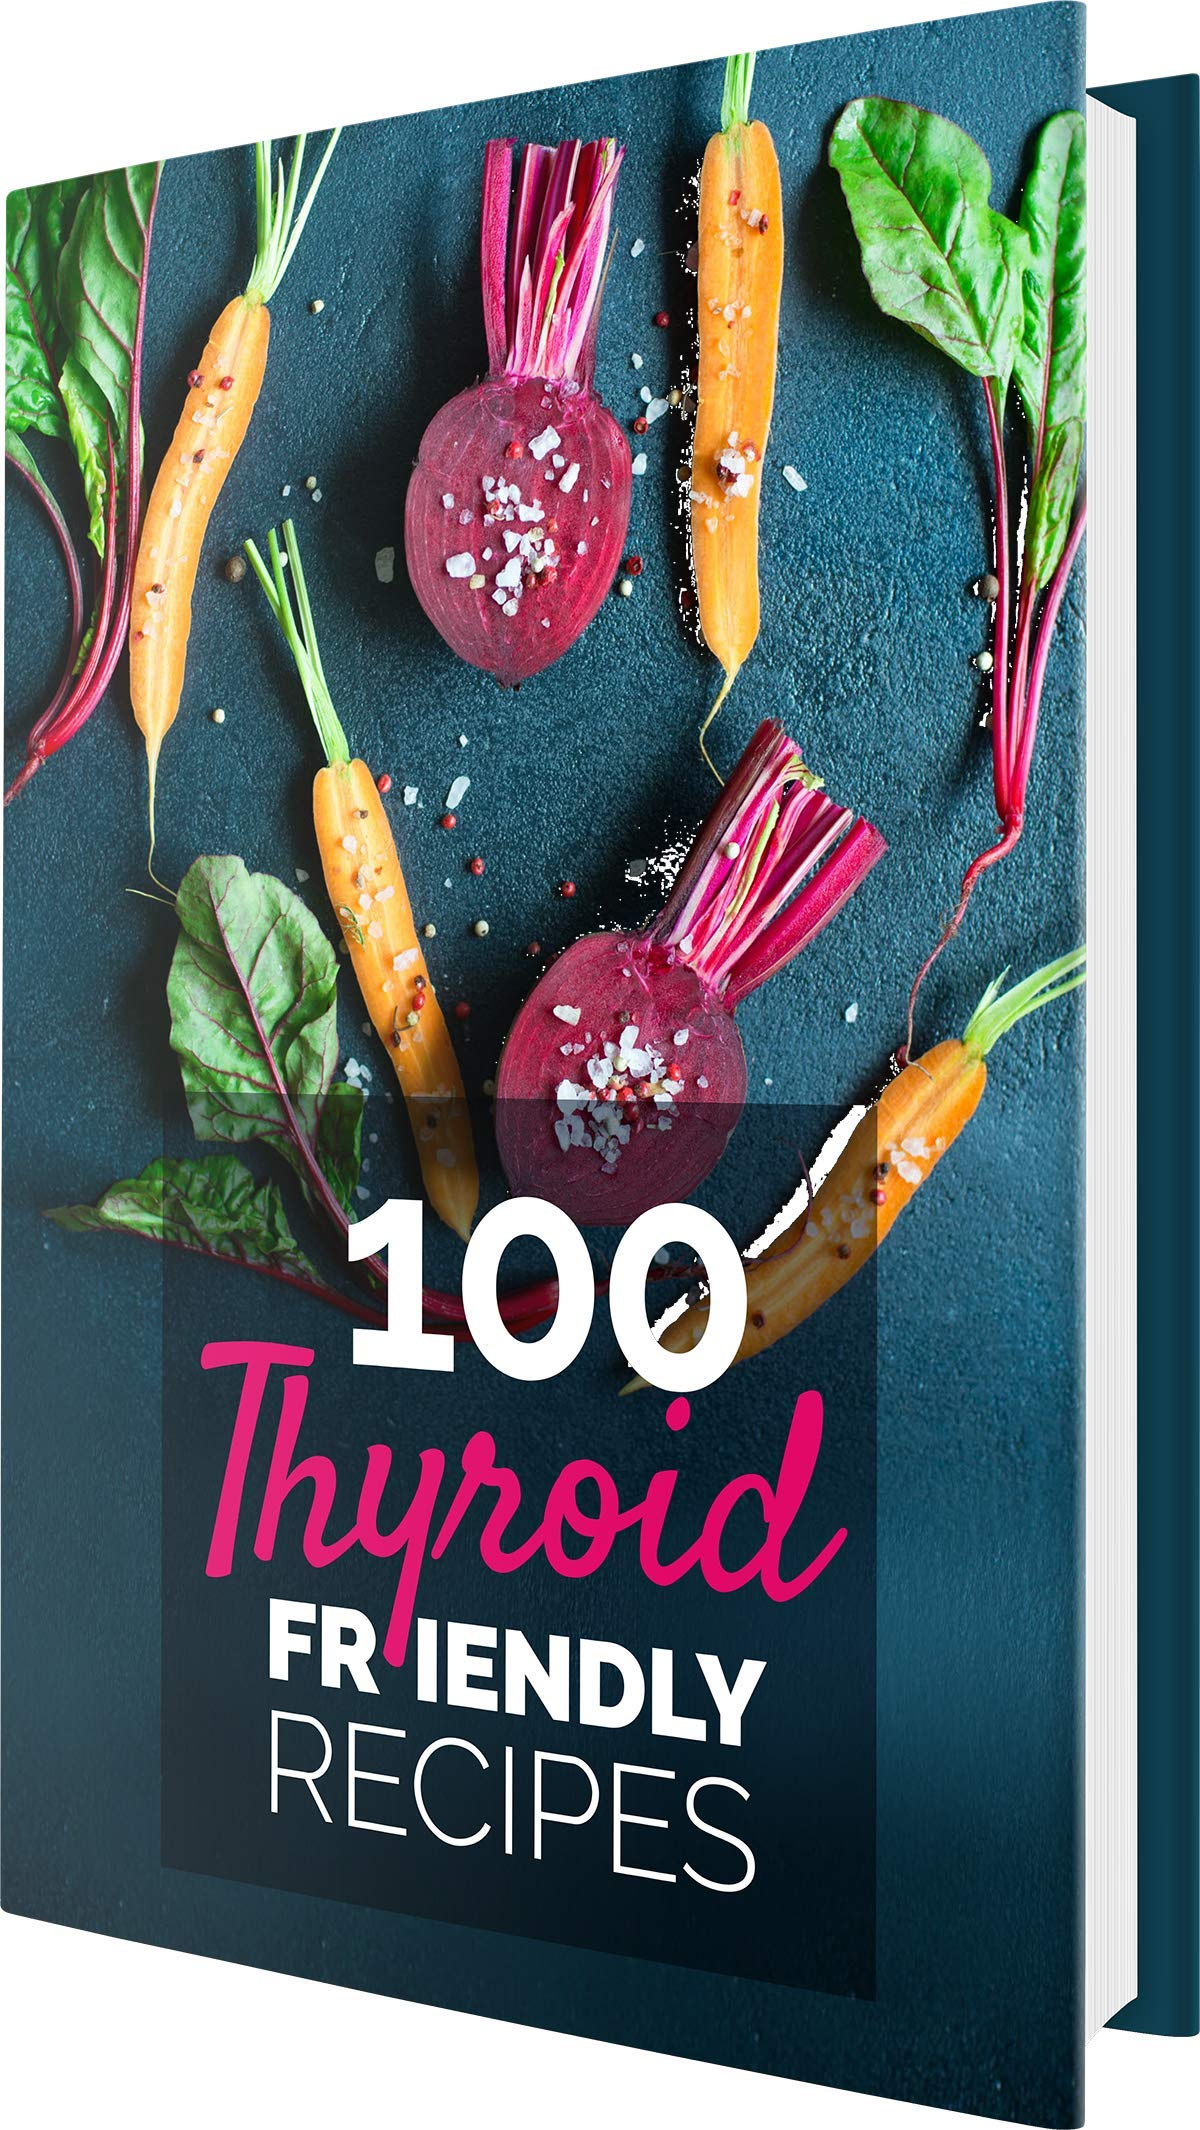 100 Thyroid Friendly Recipes Cookbook: Easy and Convenient Diet Recipes for Thyroid-Supporting Meals - Quick Recipes for Breakfast, Soups, Snacks, Smoothies, Main Dishes and Desserts for Beginners 1